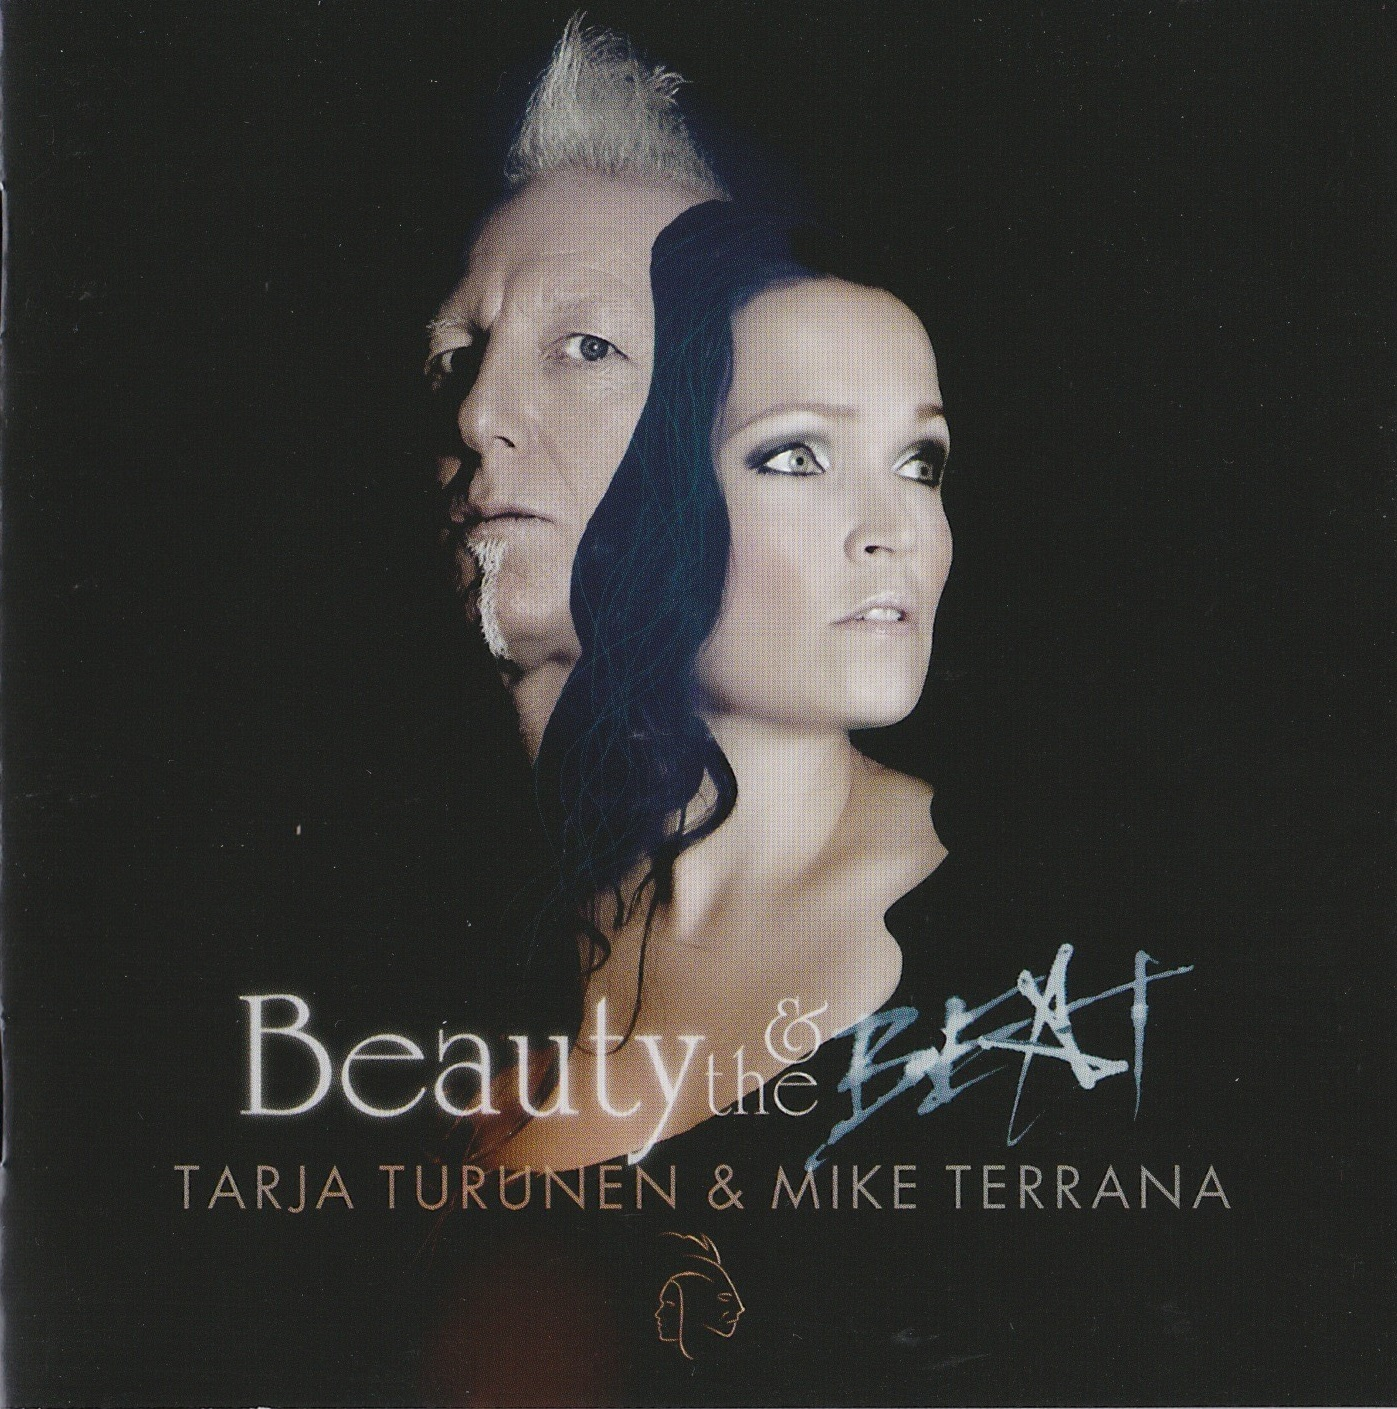 Tarja Turunen & Mike Terrana — Beauty & the Beat (2014)